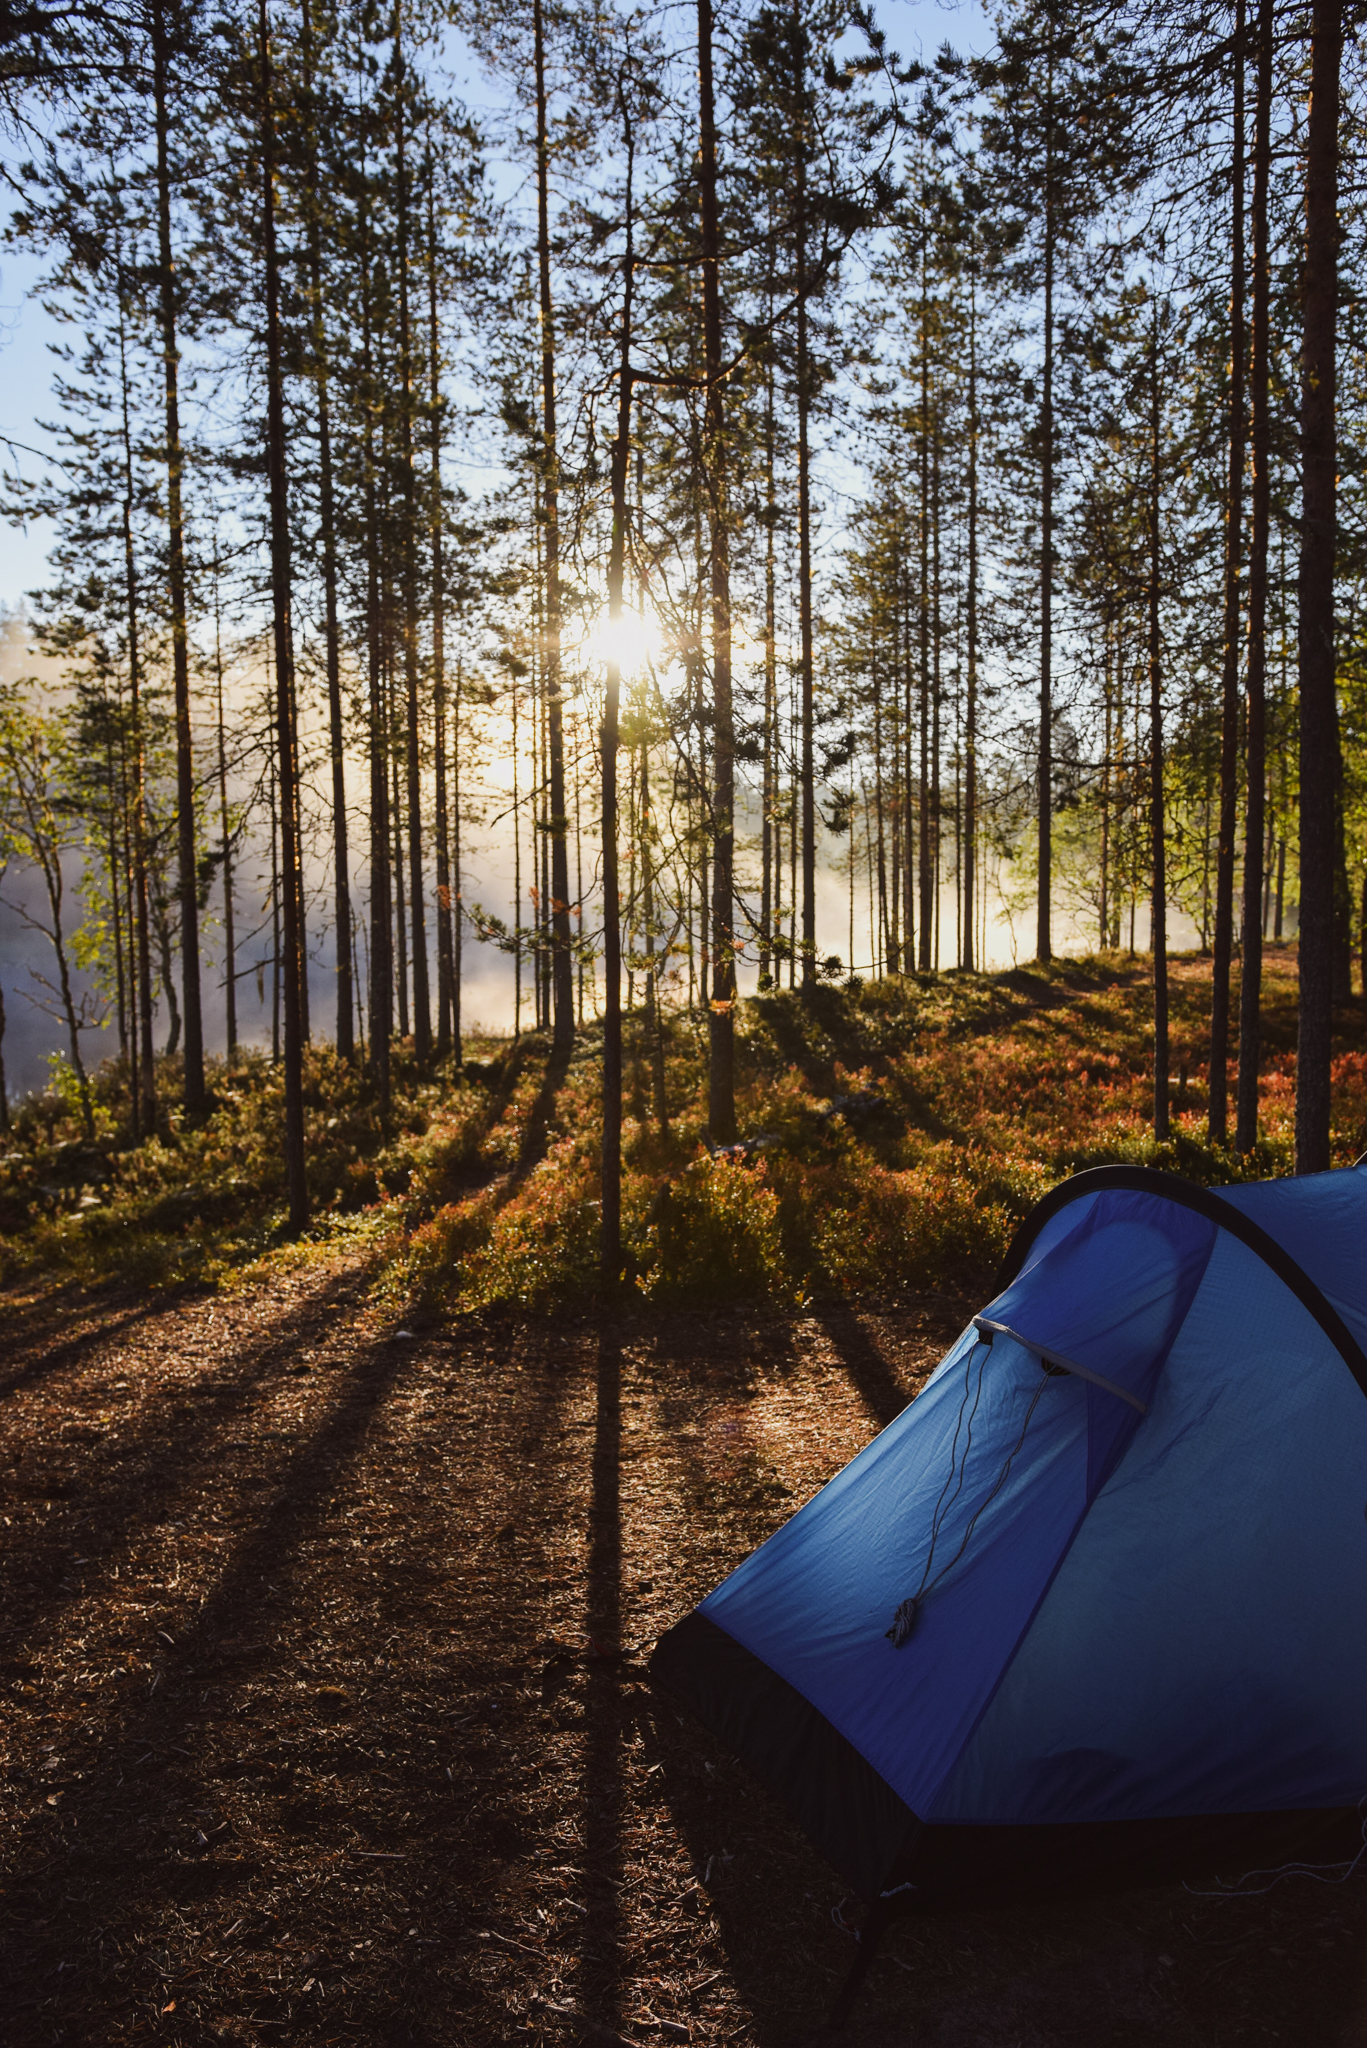 Finnish summer ways to connect with nature and yourself by sleeping outside in a tent